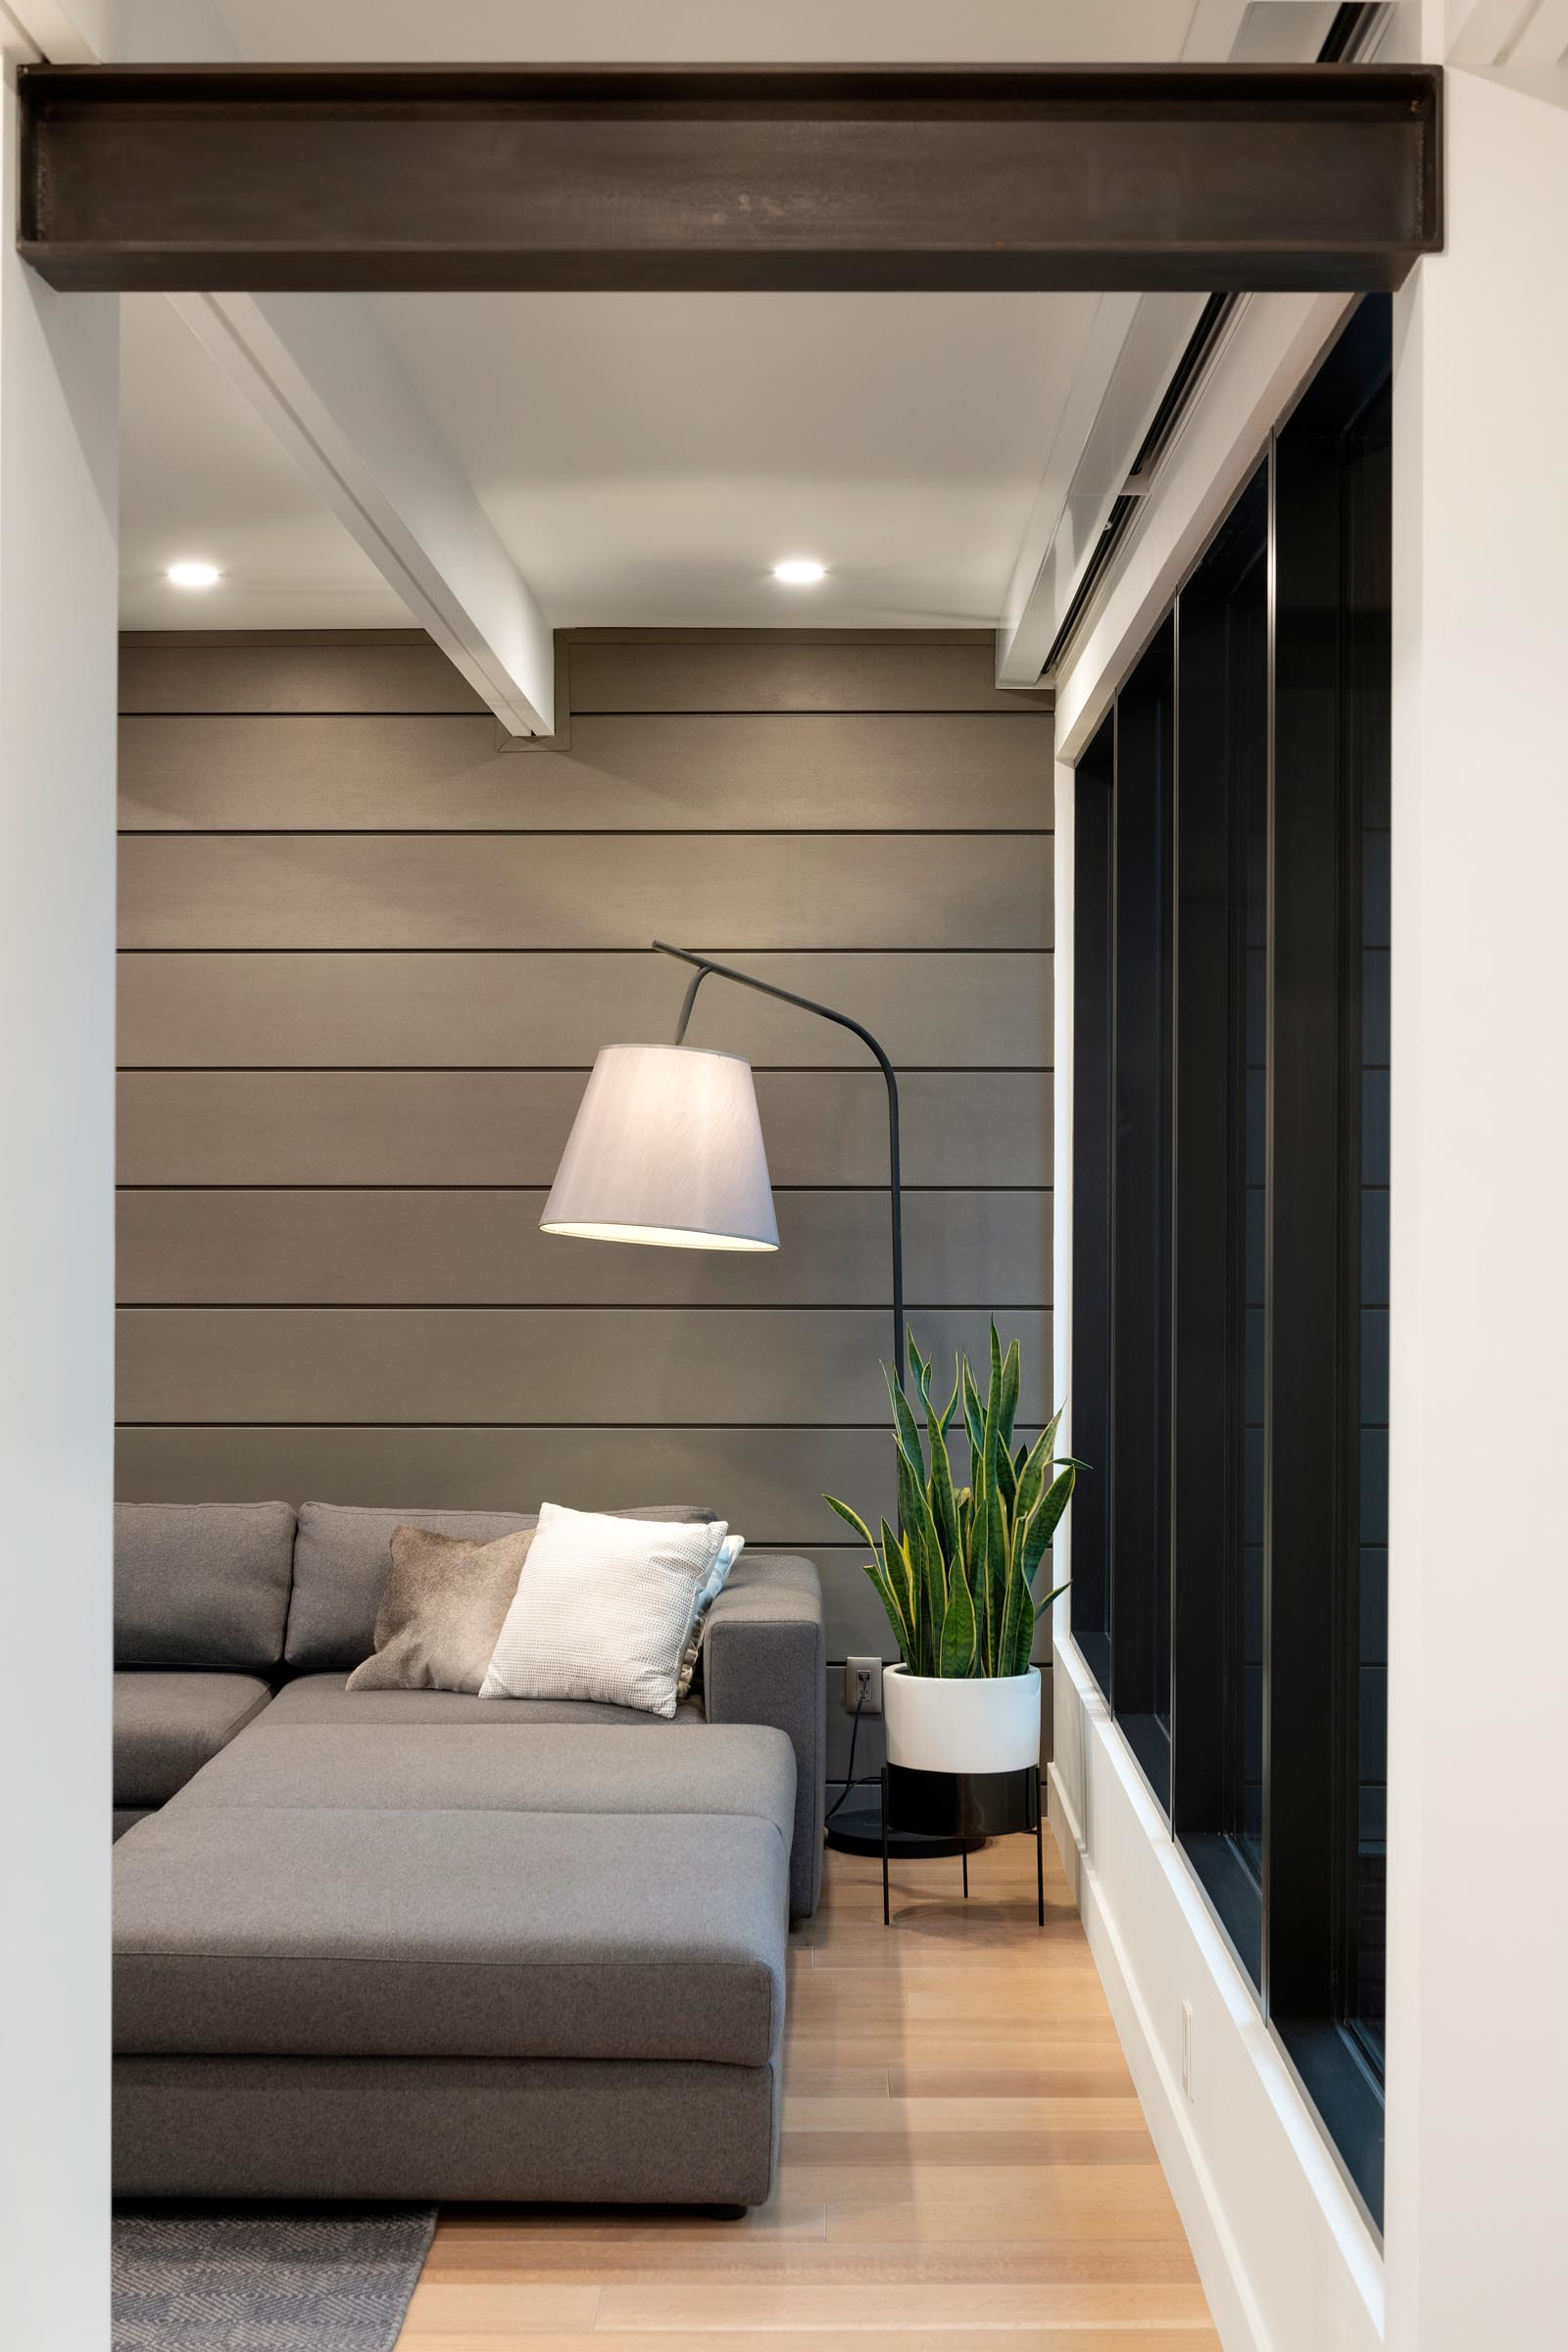 A modern living room with a gray paneled wall and matching sofa.